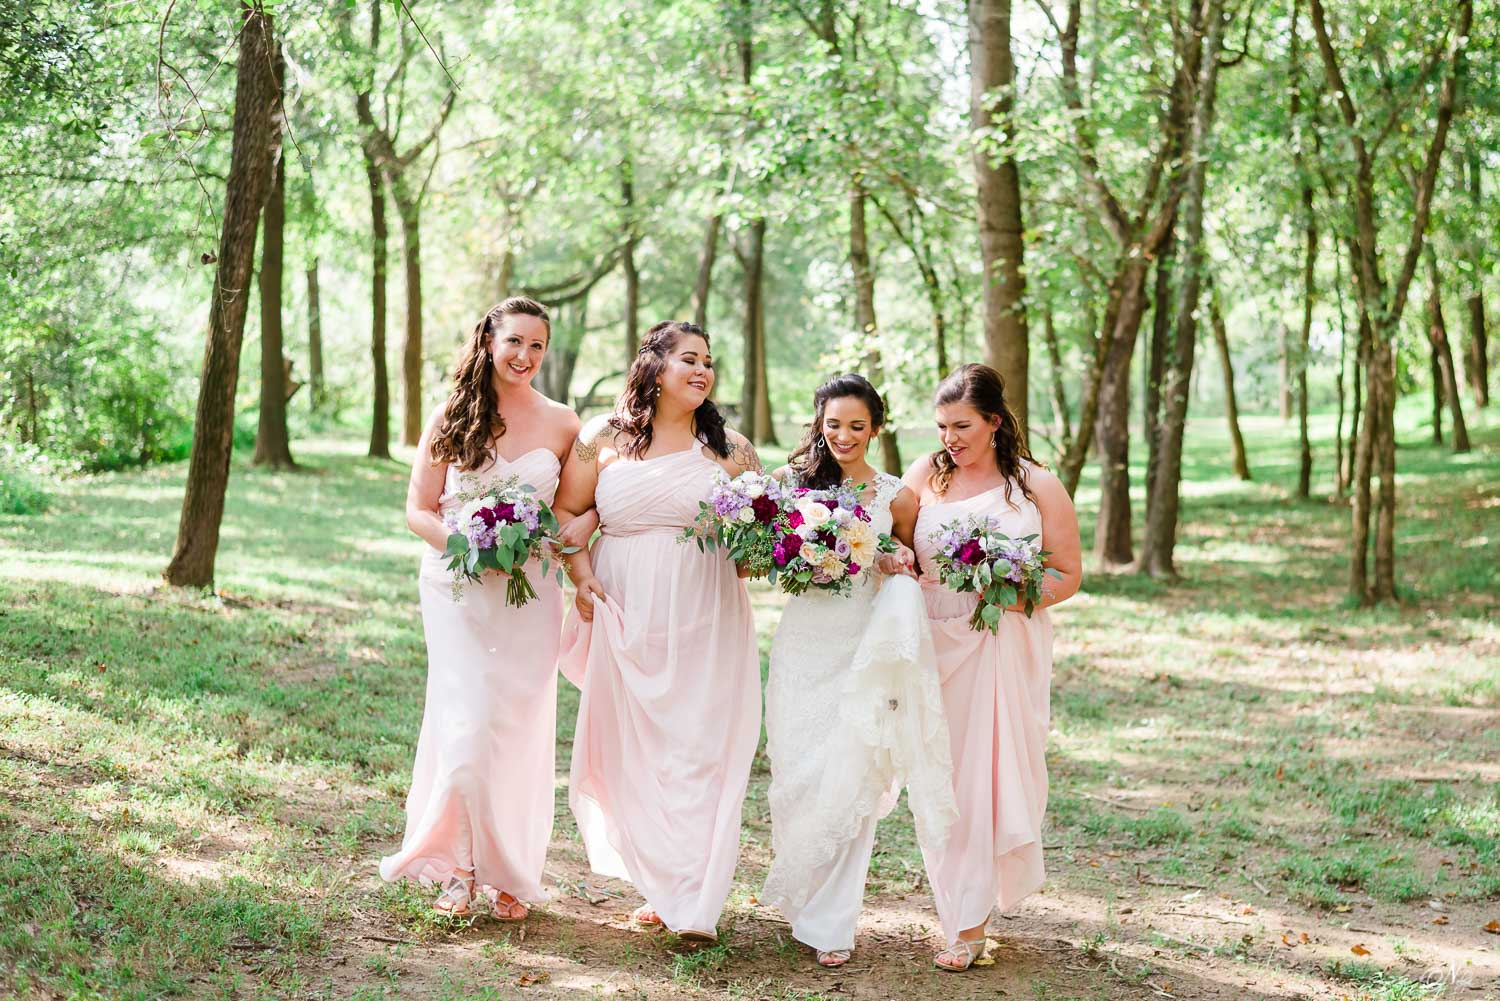 just the girls walking in the sunlit trees together at the Hiwassee riverside wedding